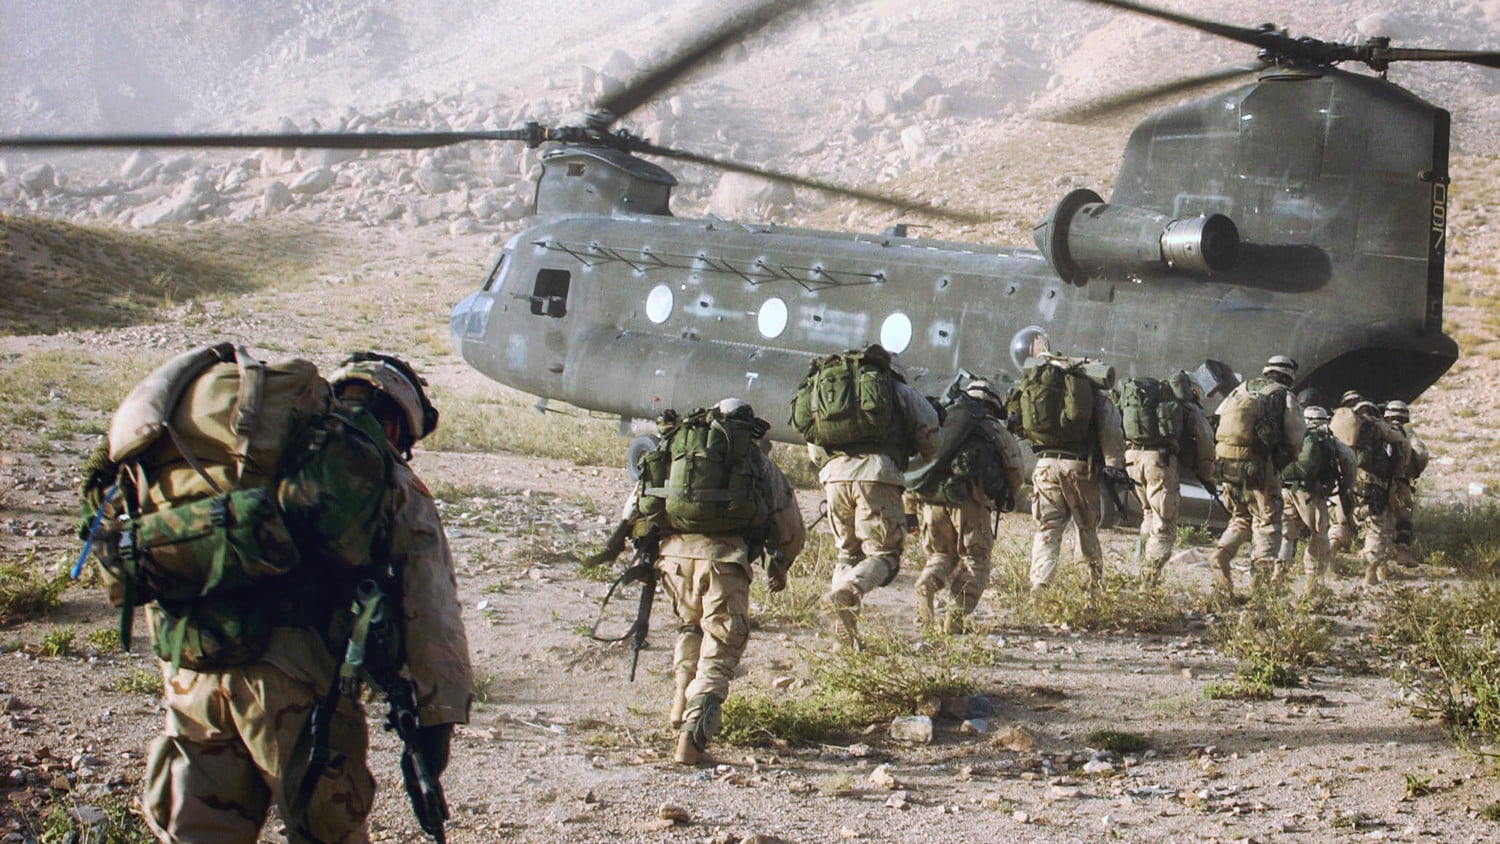 u s technology and iraq November marked 10 years since the first us death in afghanistan blamed, when it happened us field commanders in iraq began demanding for their troops something other than the boxy humvees that were being ripped and bomb-defeating technology on board has reached a.